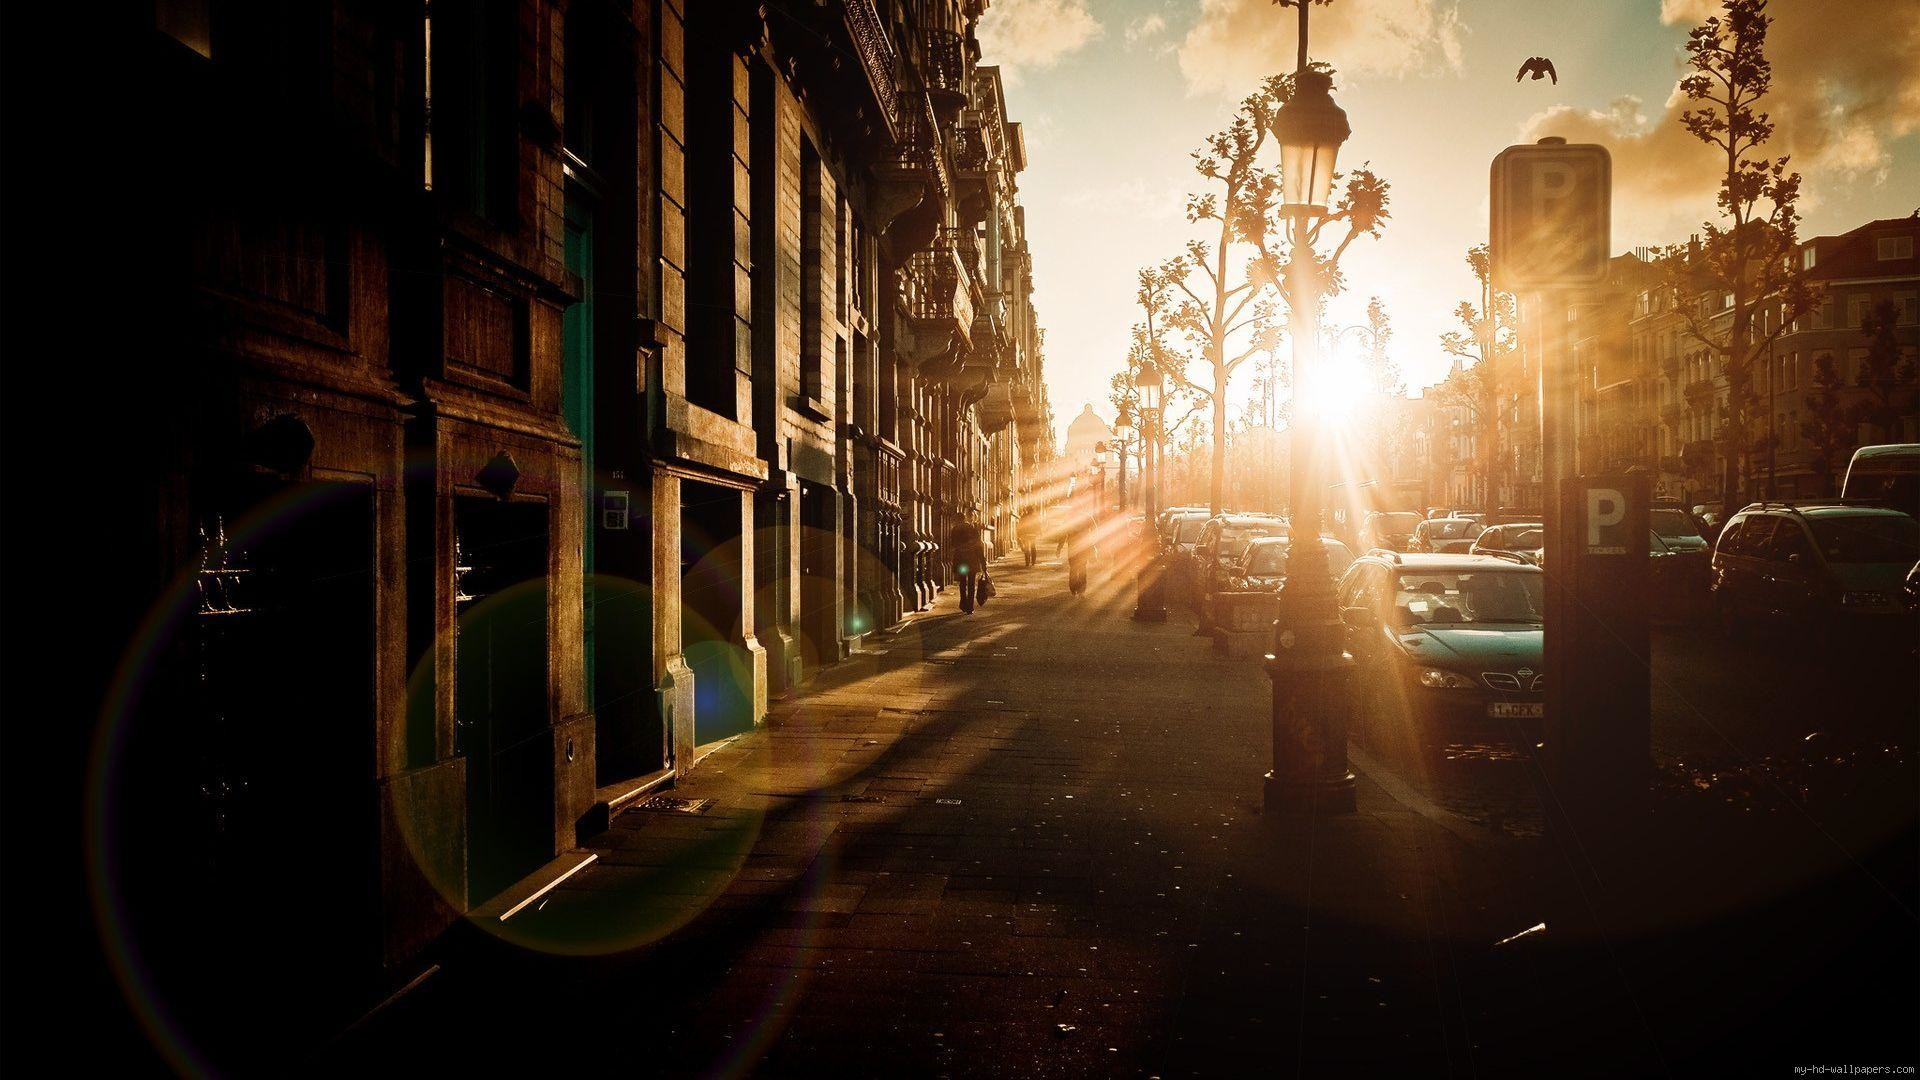 Sunrise in an old city …